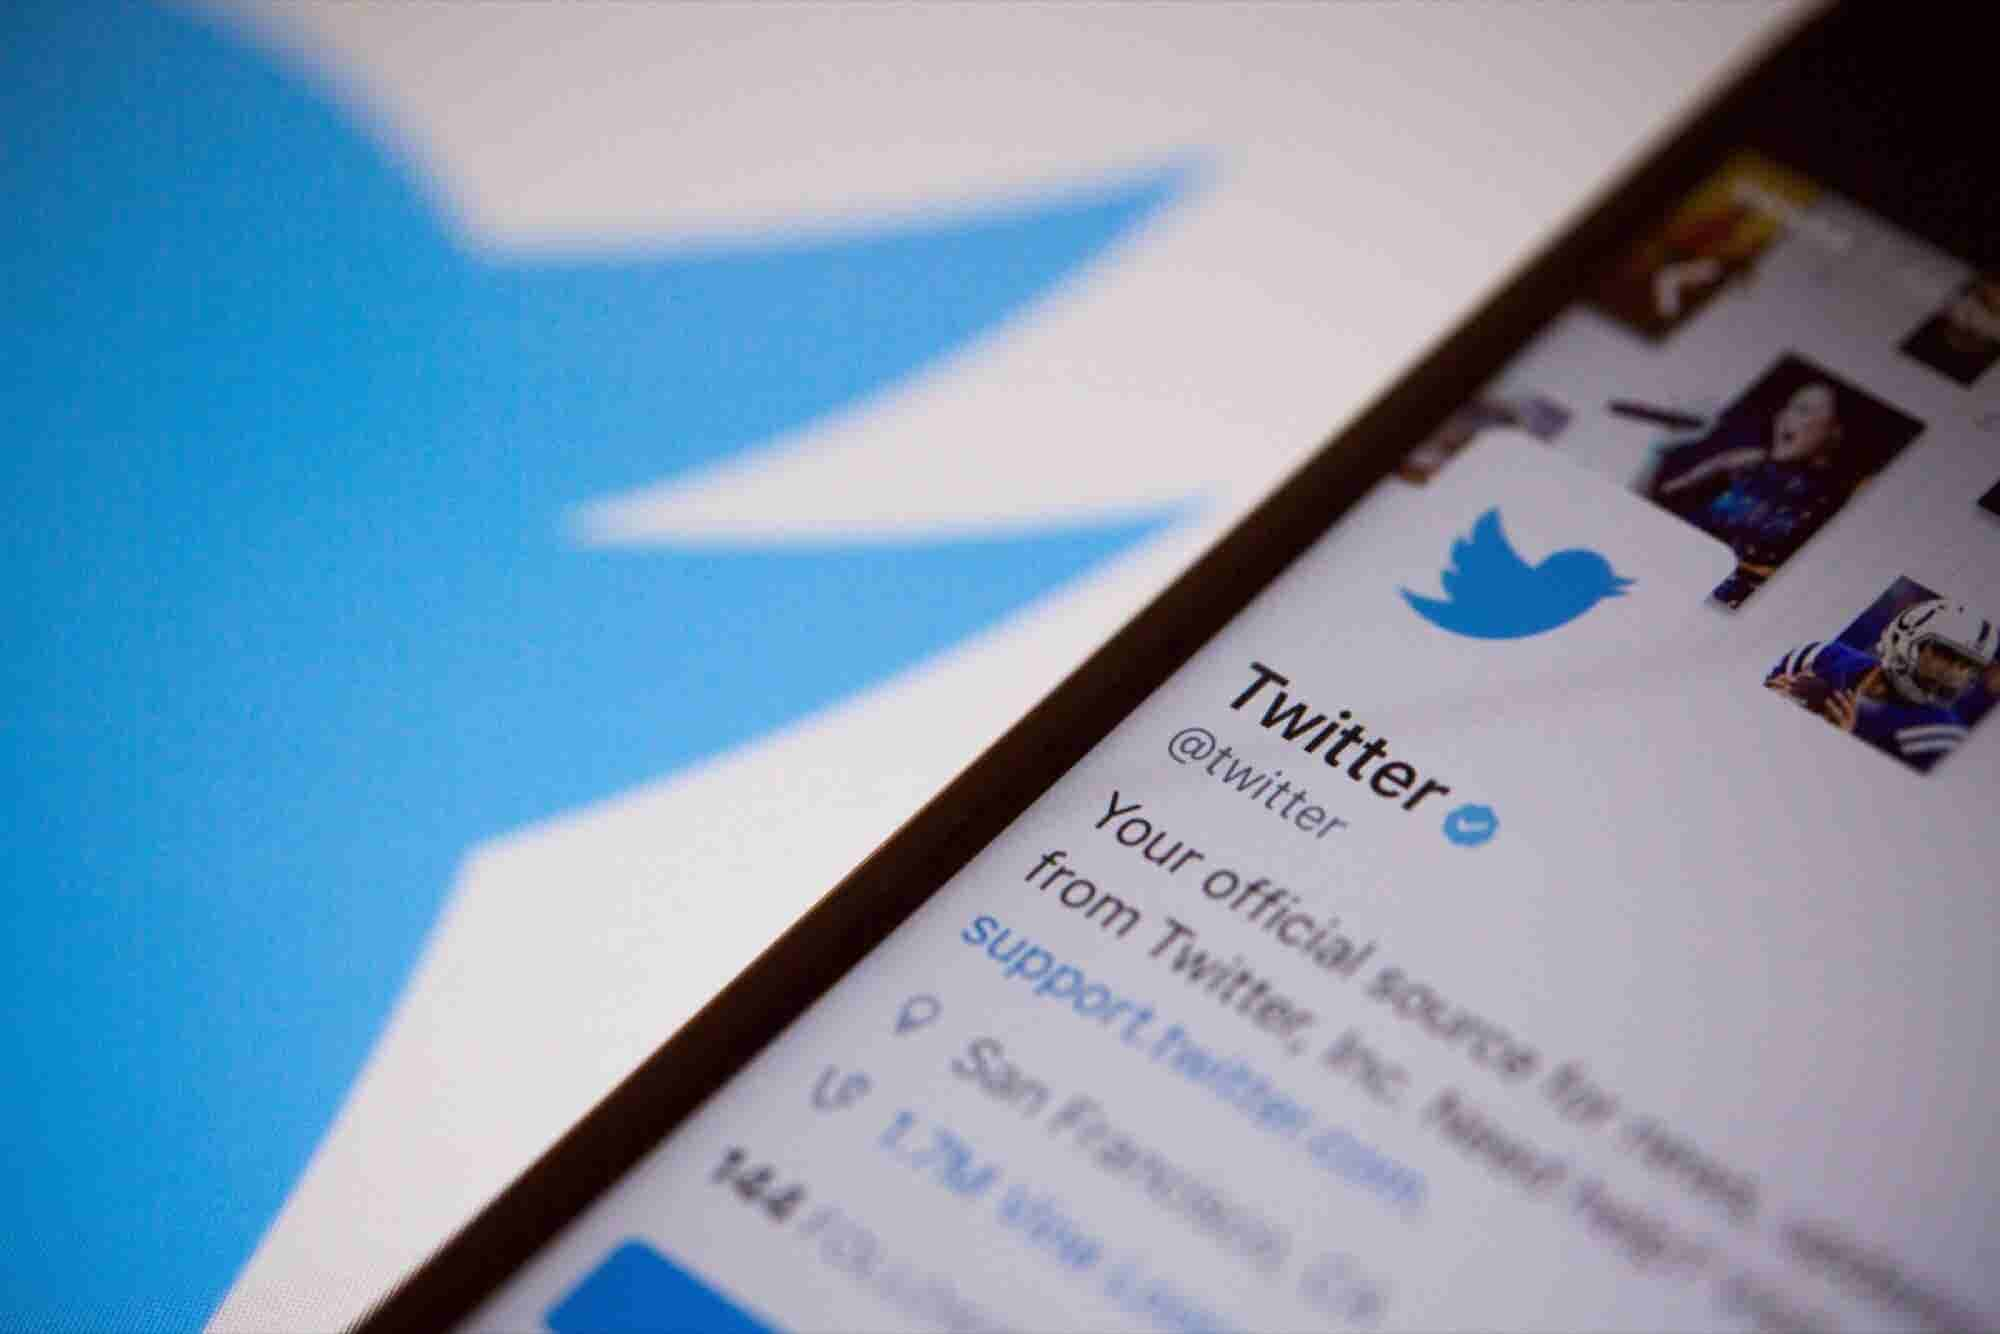 Report: Twitter Won't Count Links, Photos in 140-Character Limit